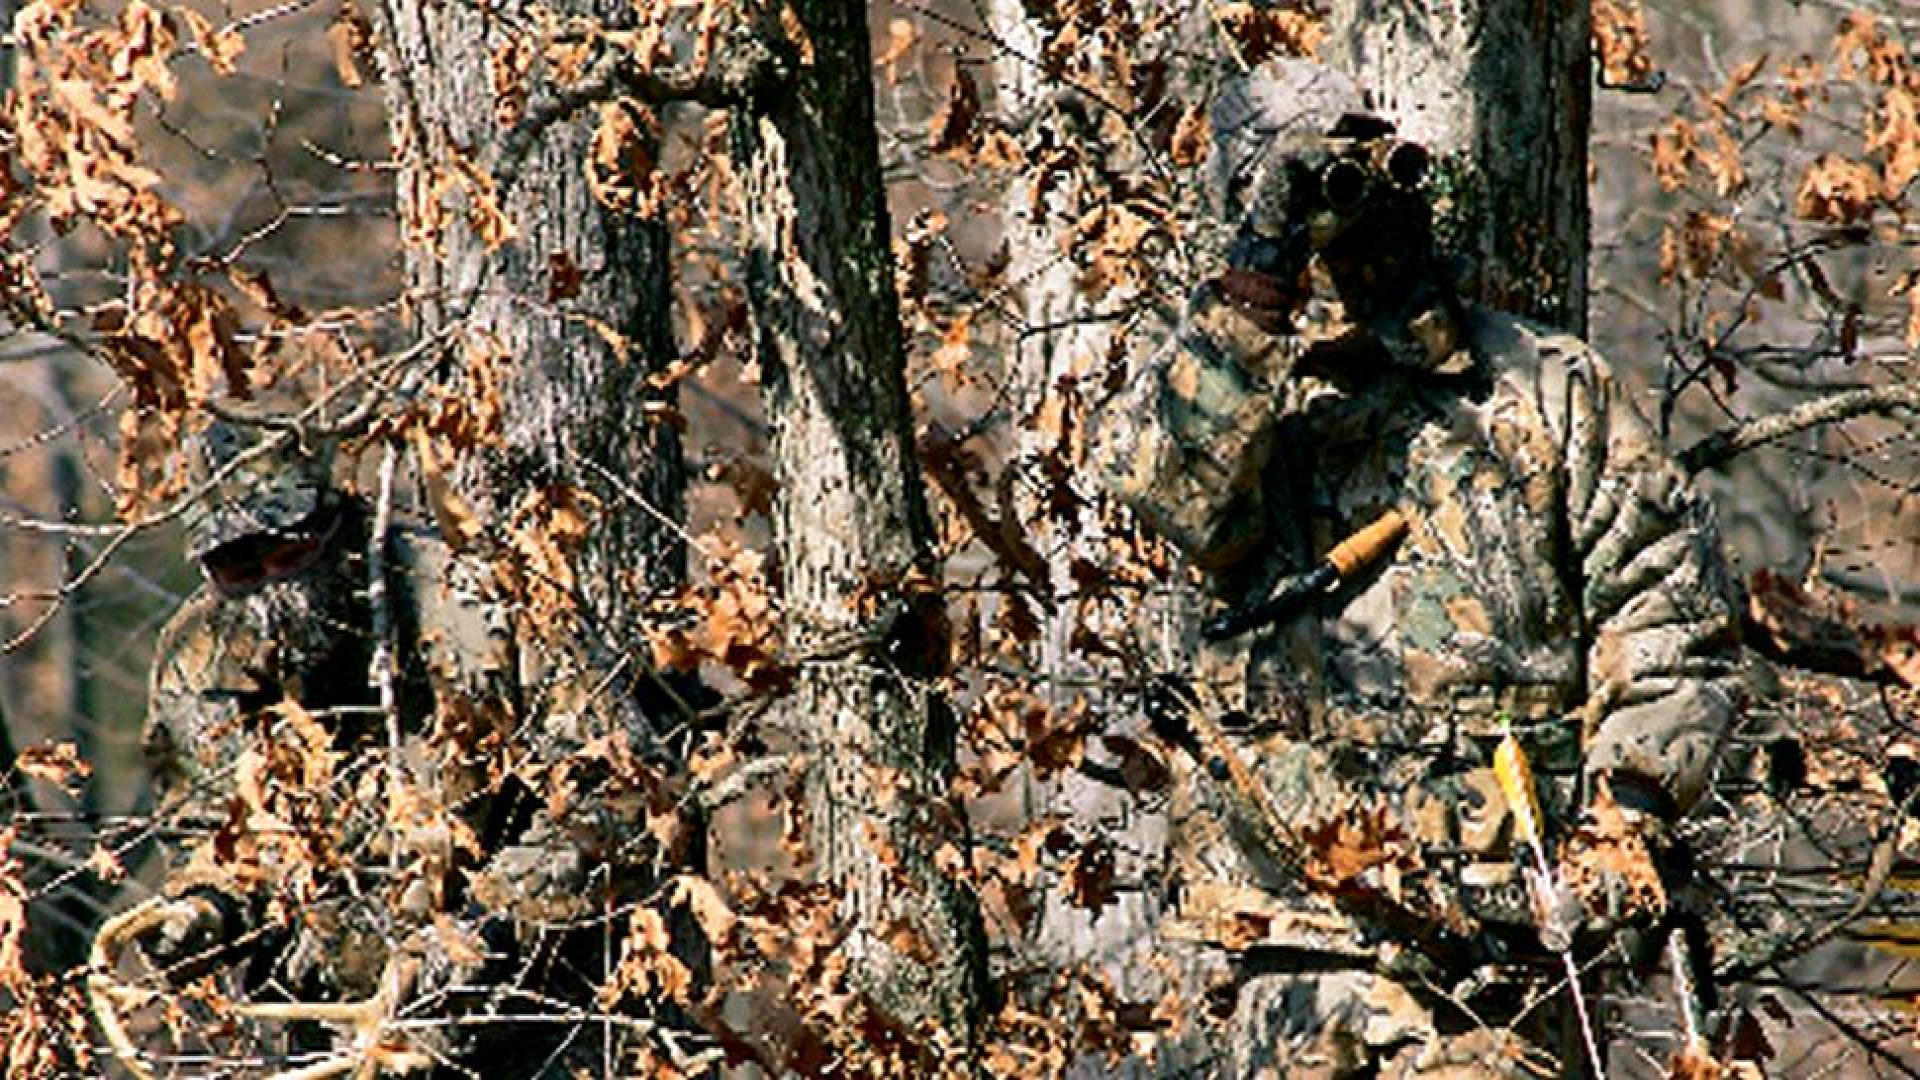 1920x1080 Realtree Wallpaper Unique Realtree Camo Hd Desktop Backgrounds Wallpaper